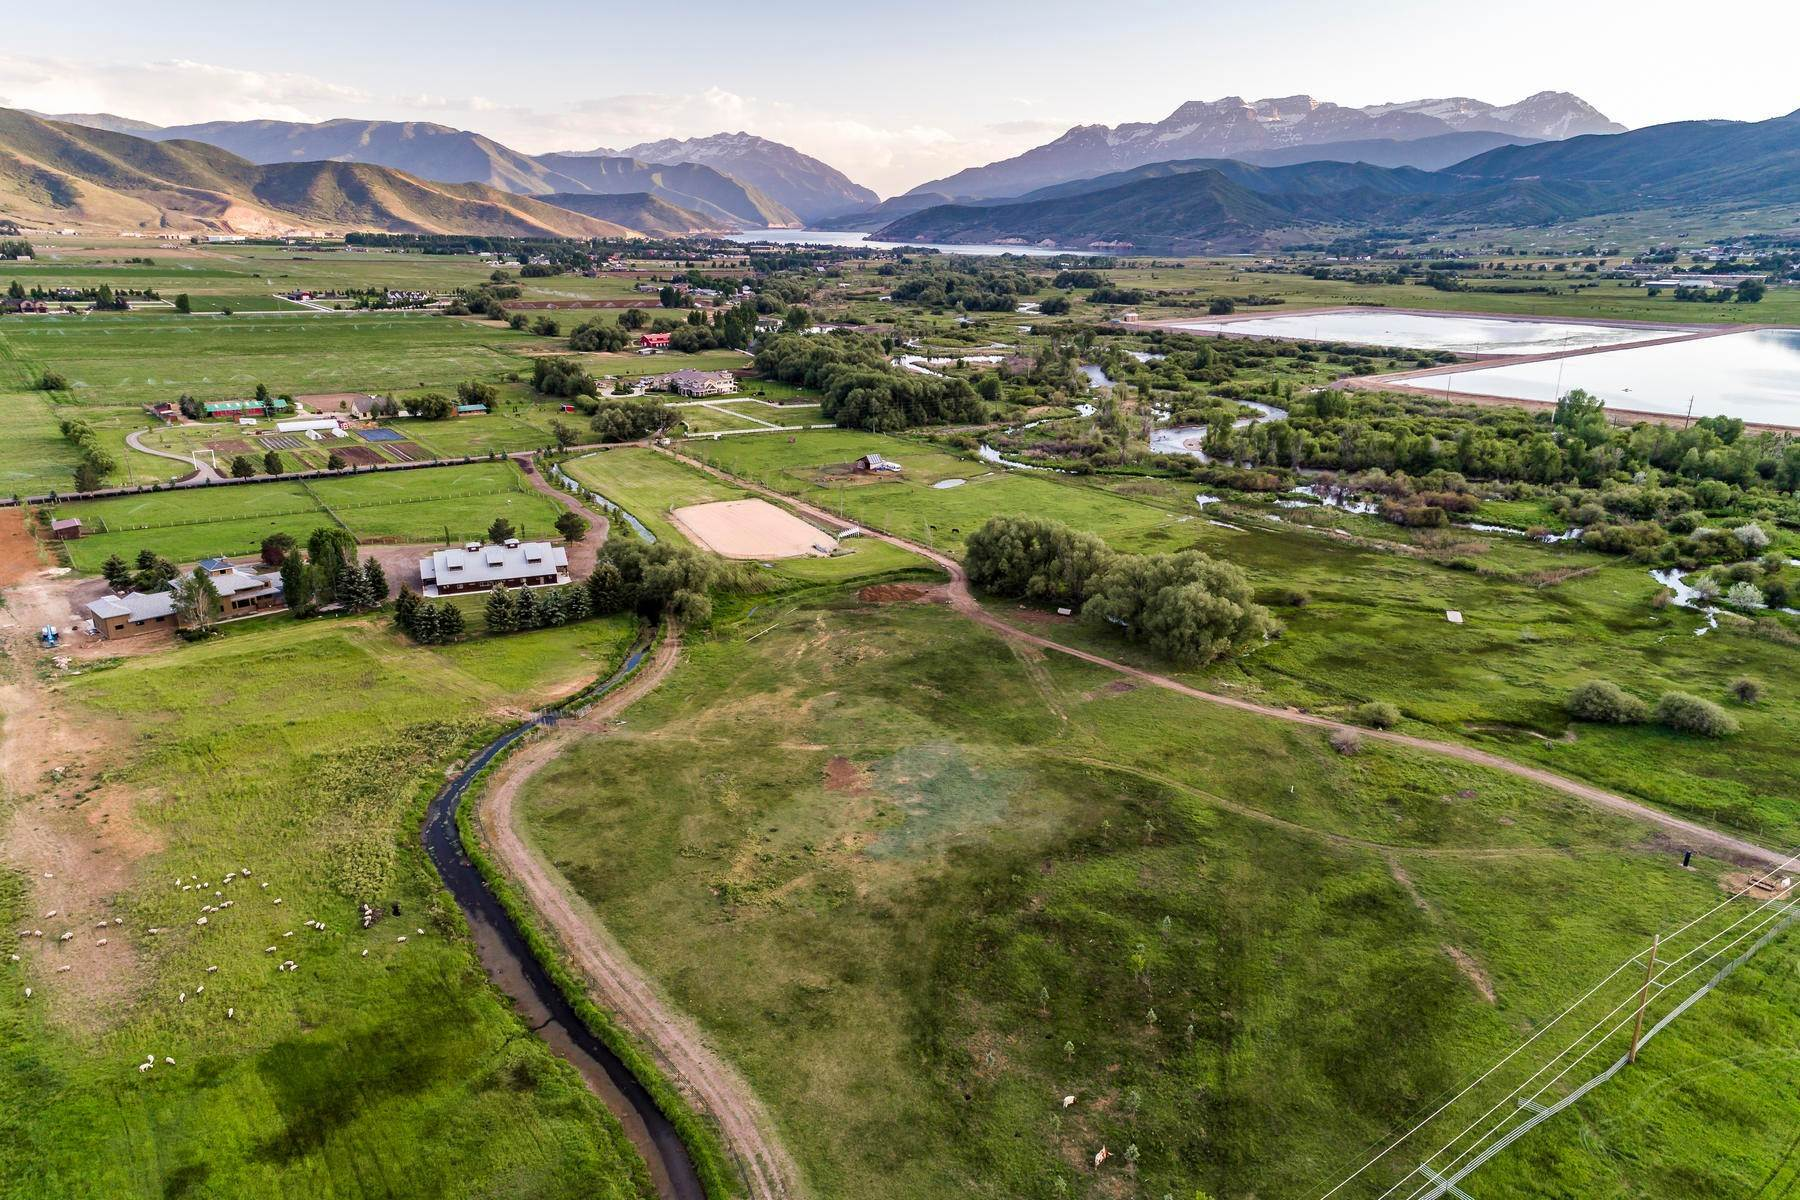 Land for Sale at Beautiful 7.68 Acre Lot Near The Provo River 1500 W Midway Ln, #9 Heber, Utah 84032 United States